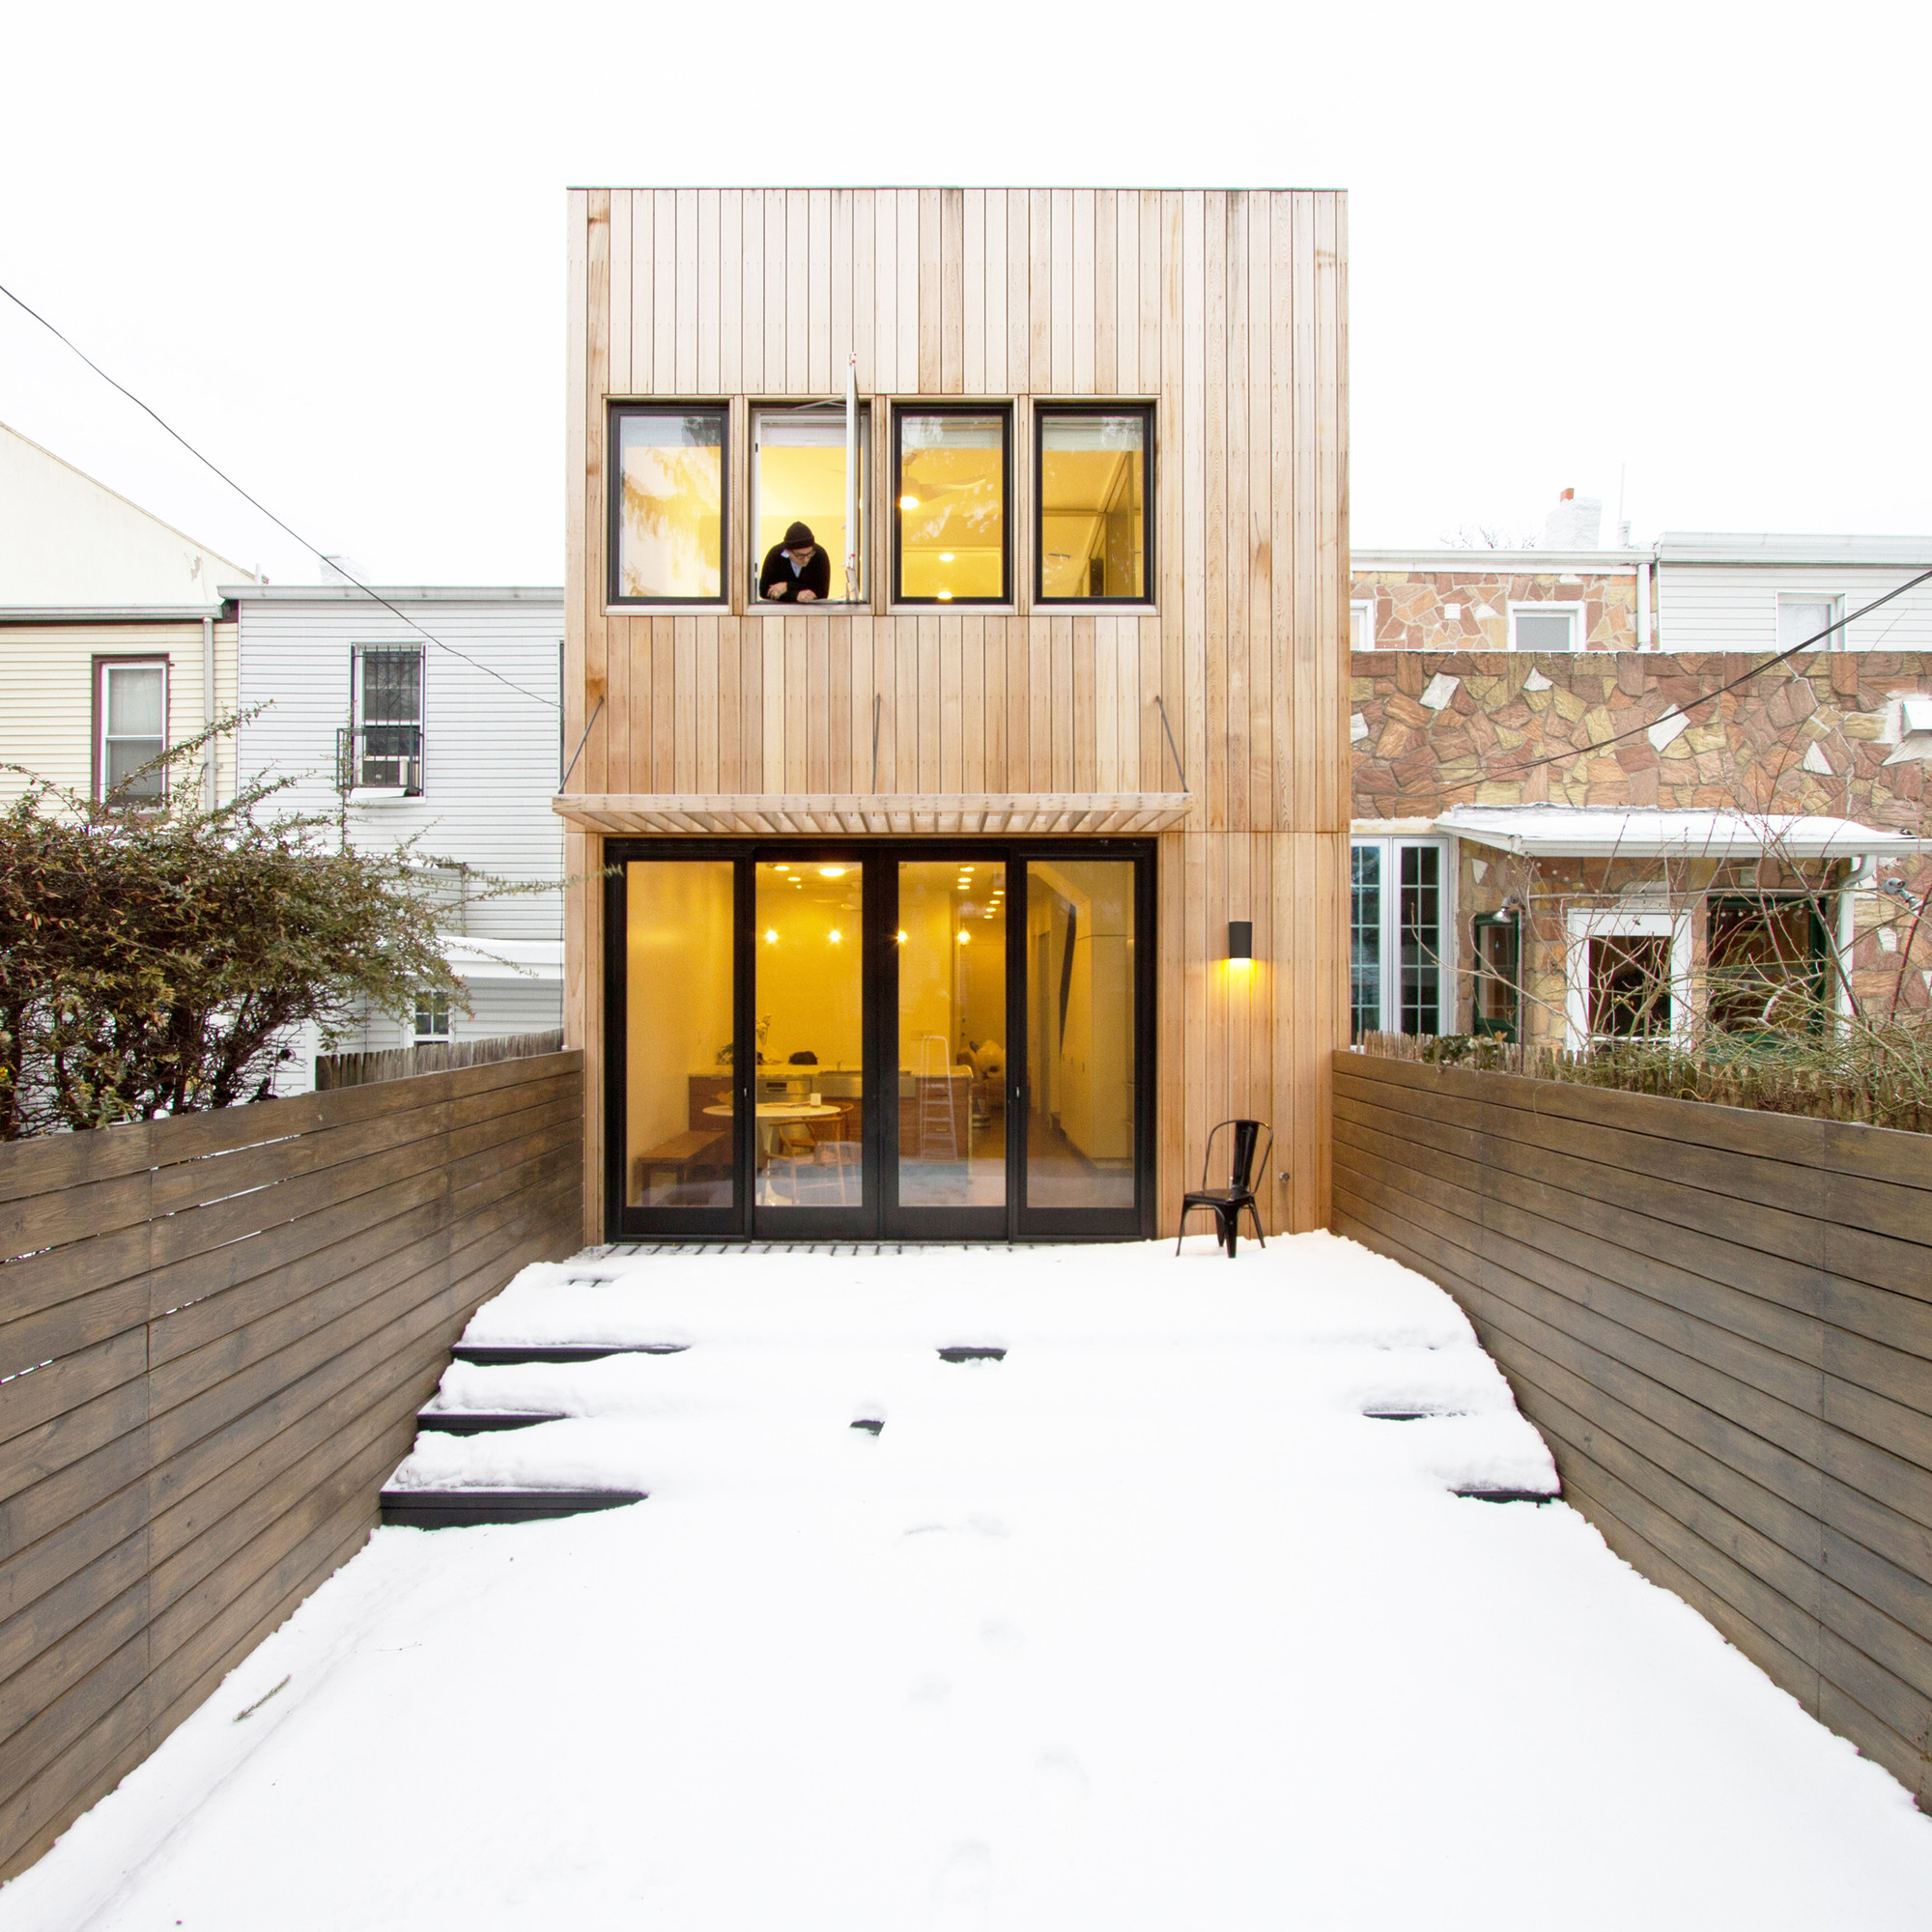 Casa no Brooklyn / Office of Architecture, © Ben Anderson Photo